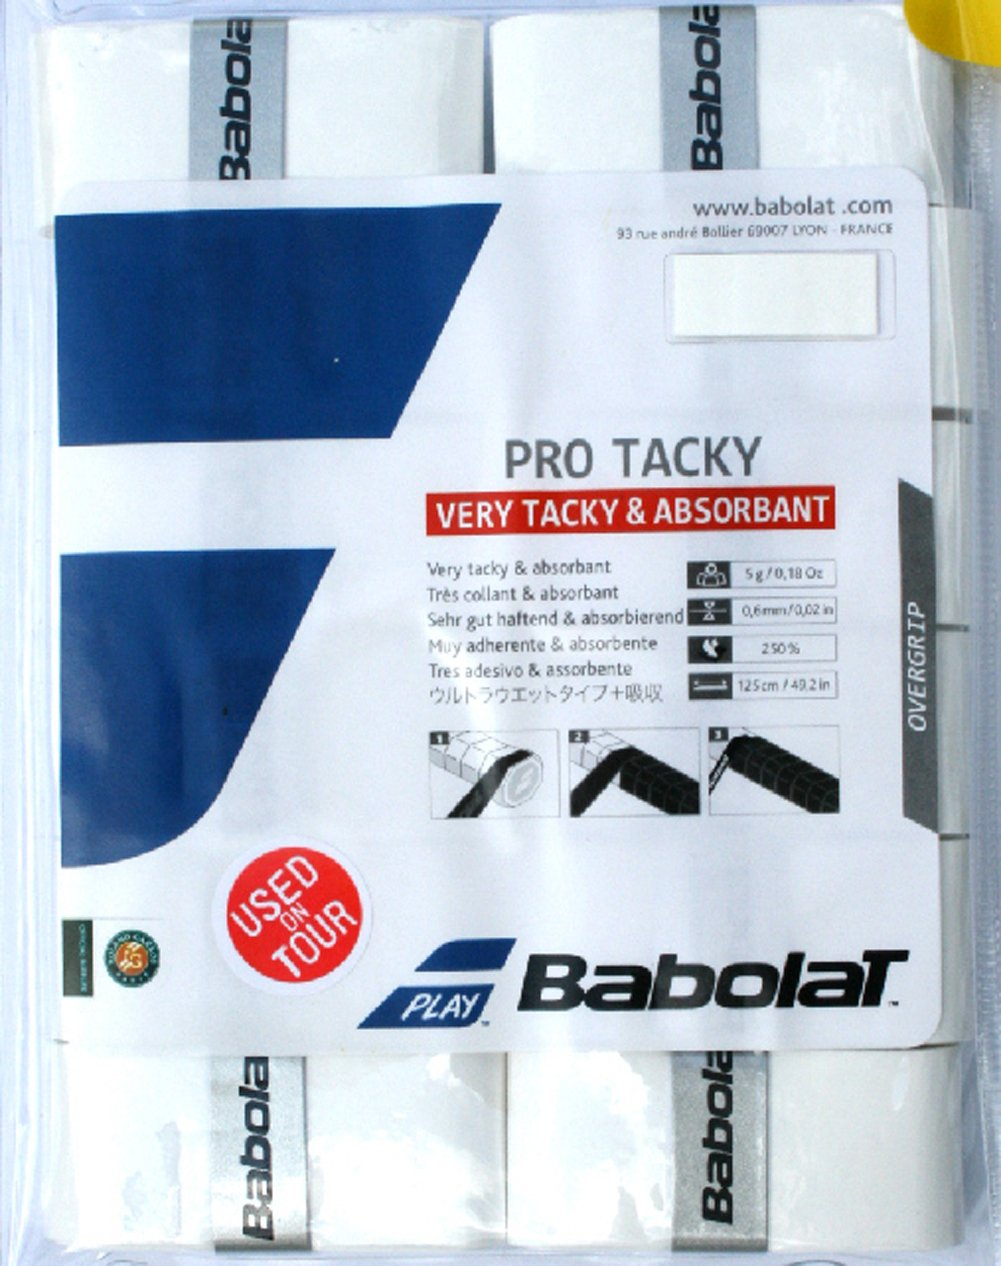 Babolat Pro Tacky Tennis Overgrip 12 Pack White Very Tacky Absorbant